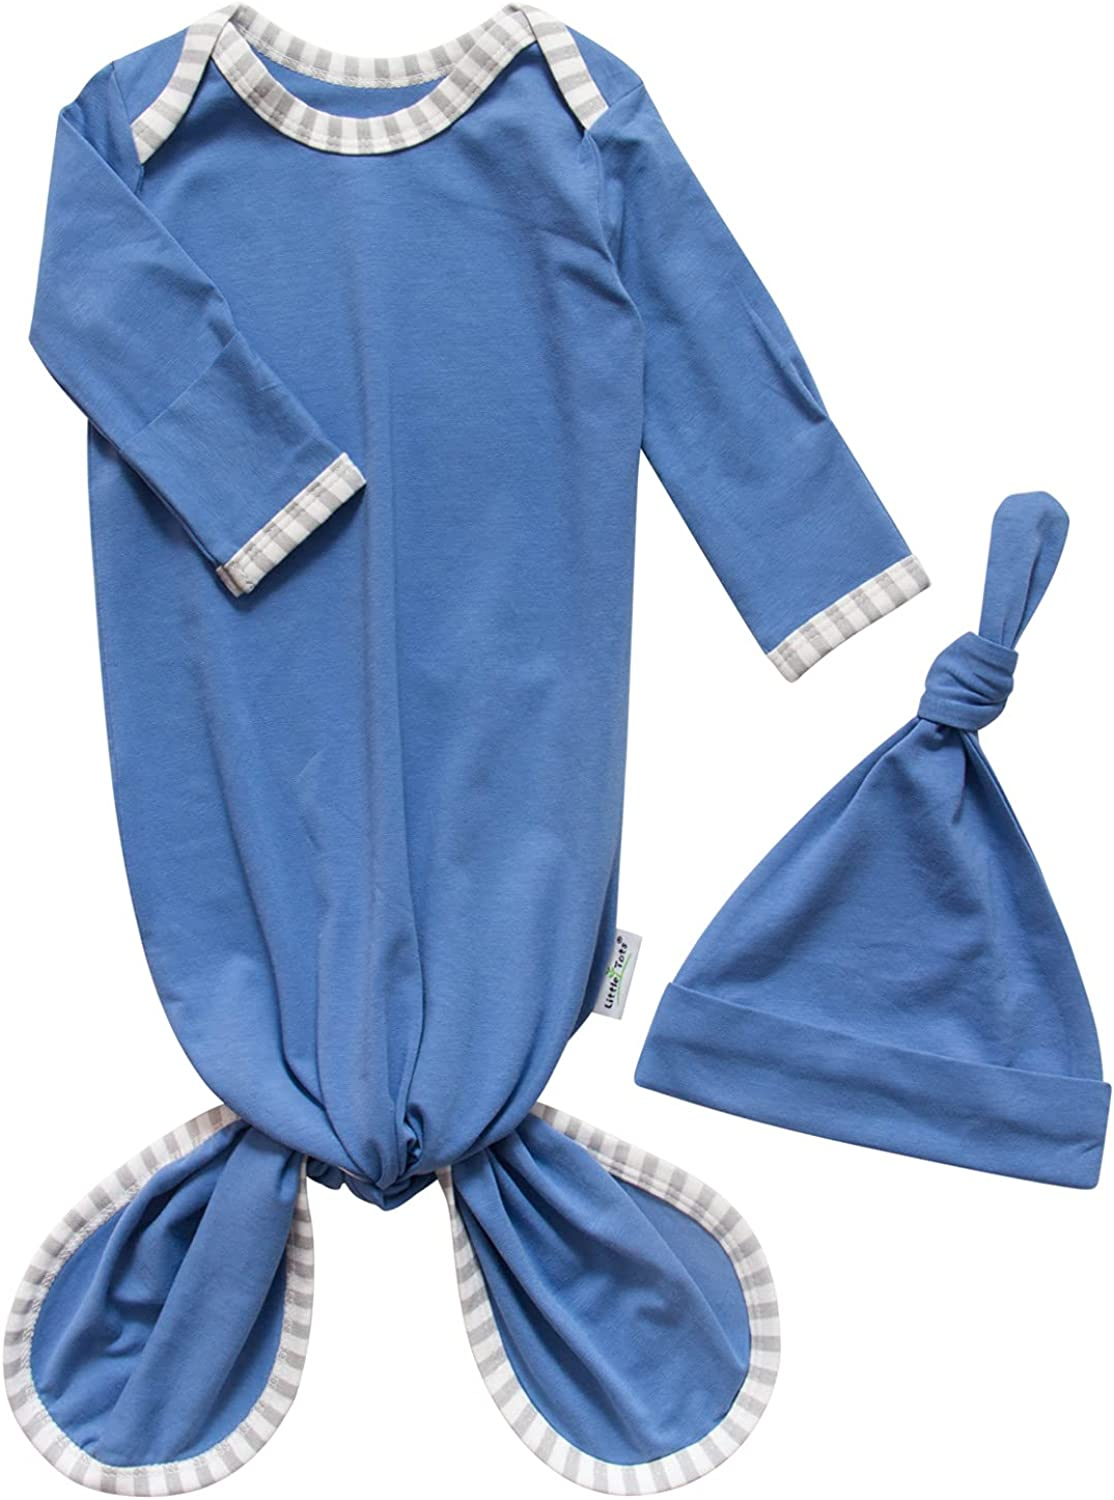 Baby Knotted Gown, Newborn Infant Long Sleeve Sleeper for Baby Girl Boy Swaddle Wear Cotton Nightgown Sleepwear with Hat Set